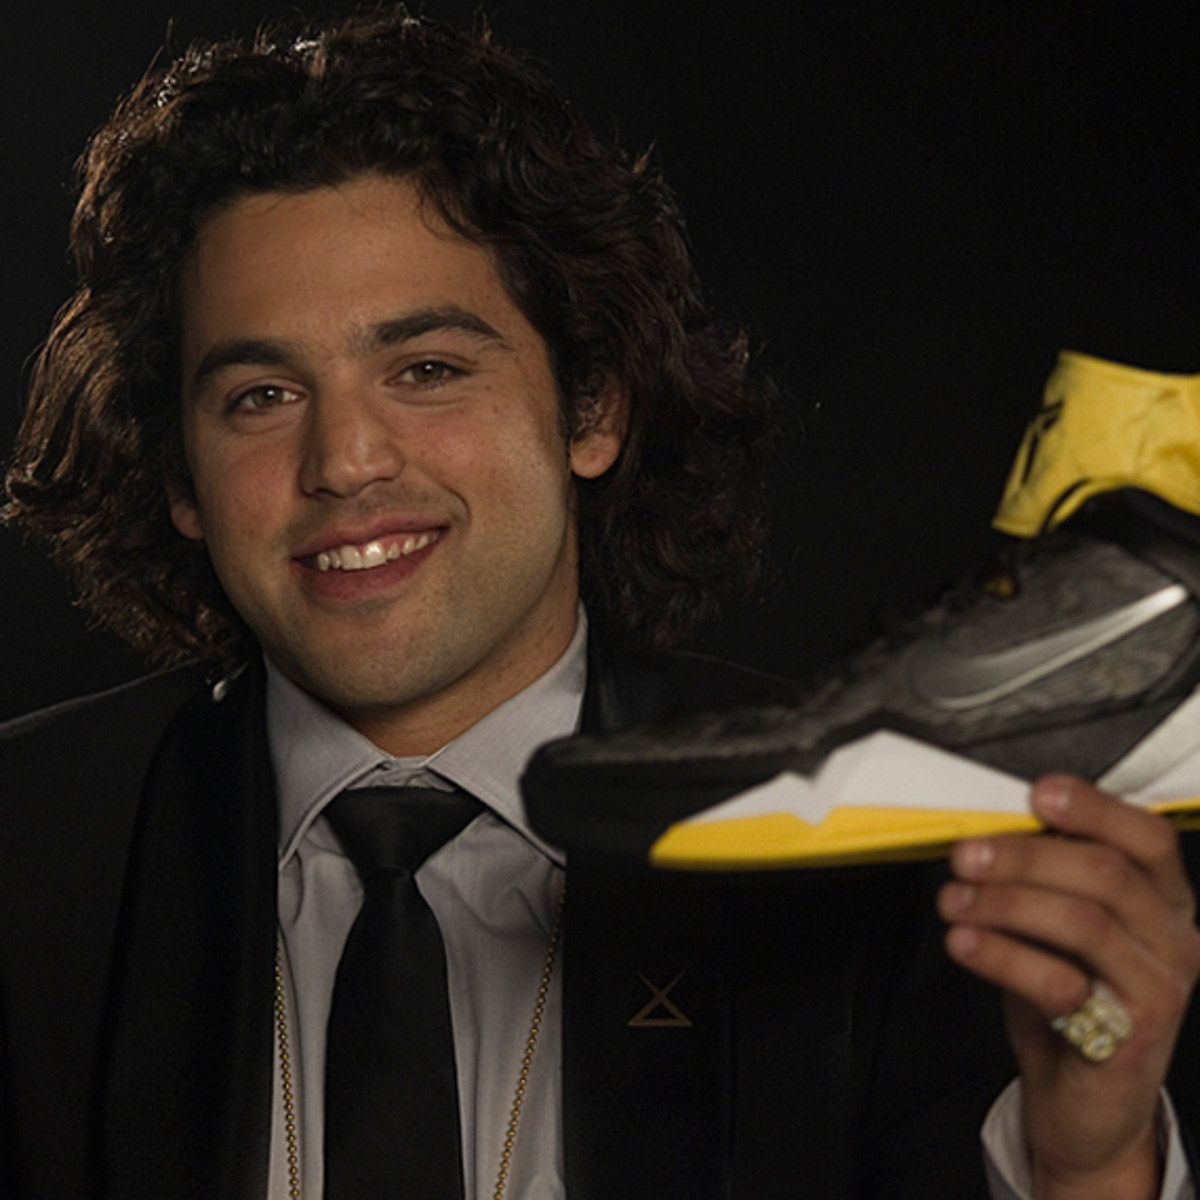 nike-kobesystem-success-for-the-successful-13